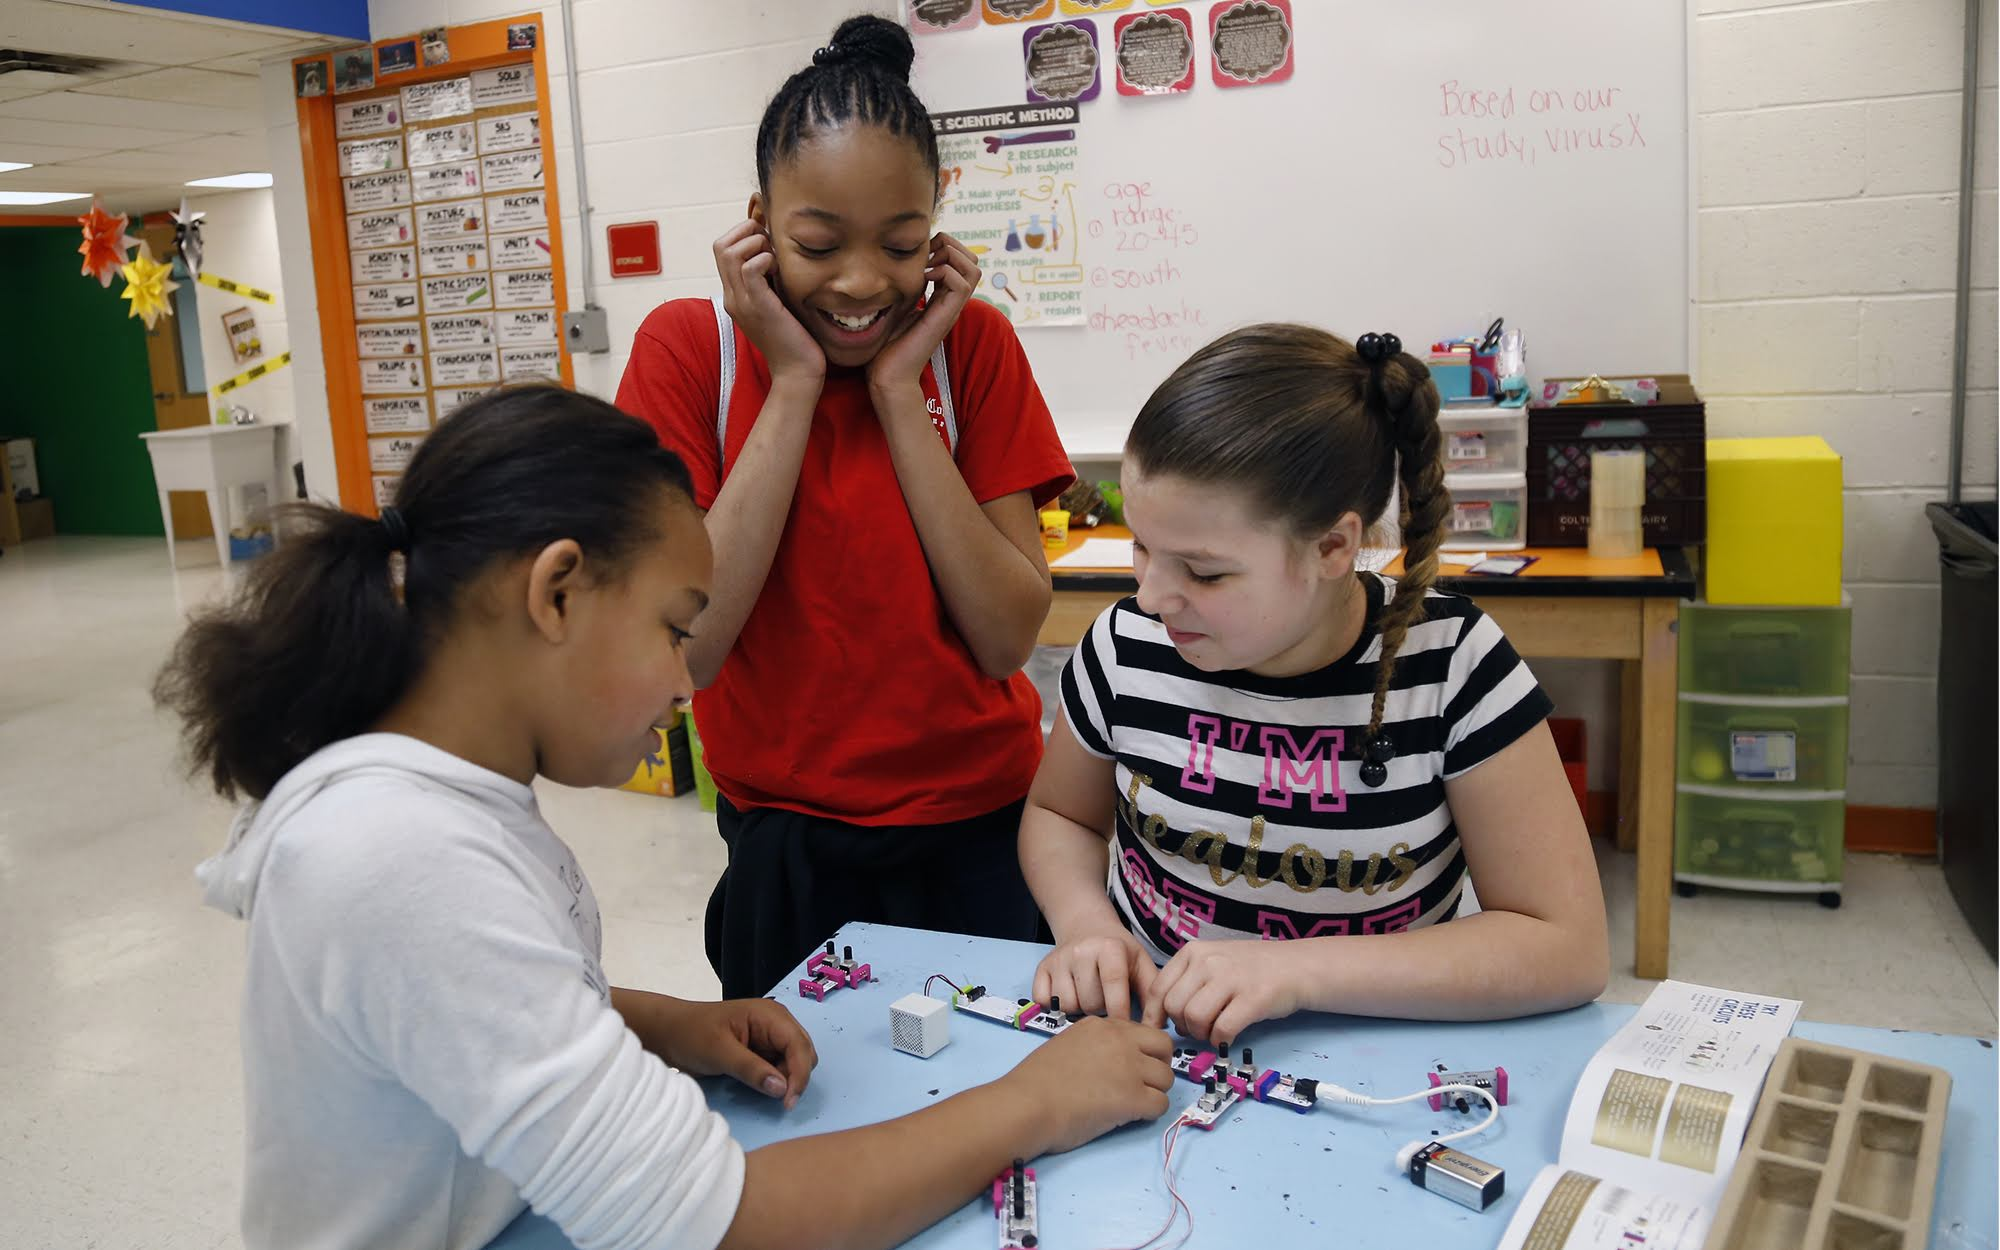 Duquesne Elementary School students Raniyah Hall, Amya Gates and Lillian Dainty (left to right) use connectable circuits called littleBits to experiment with sound frequencies in the school's Boiler Room on March 26.